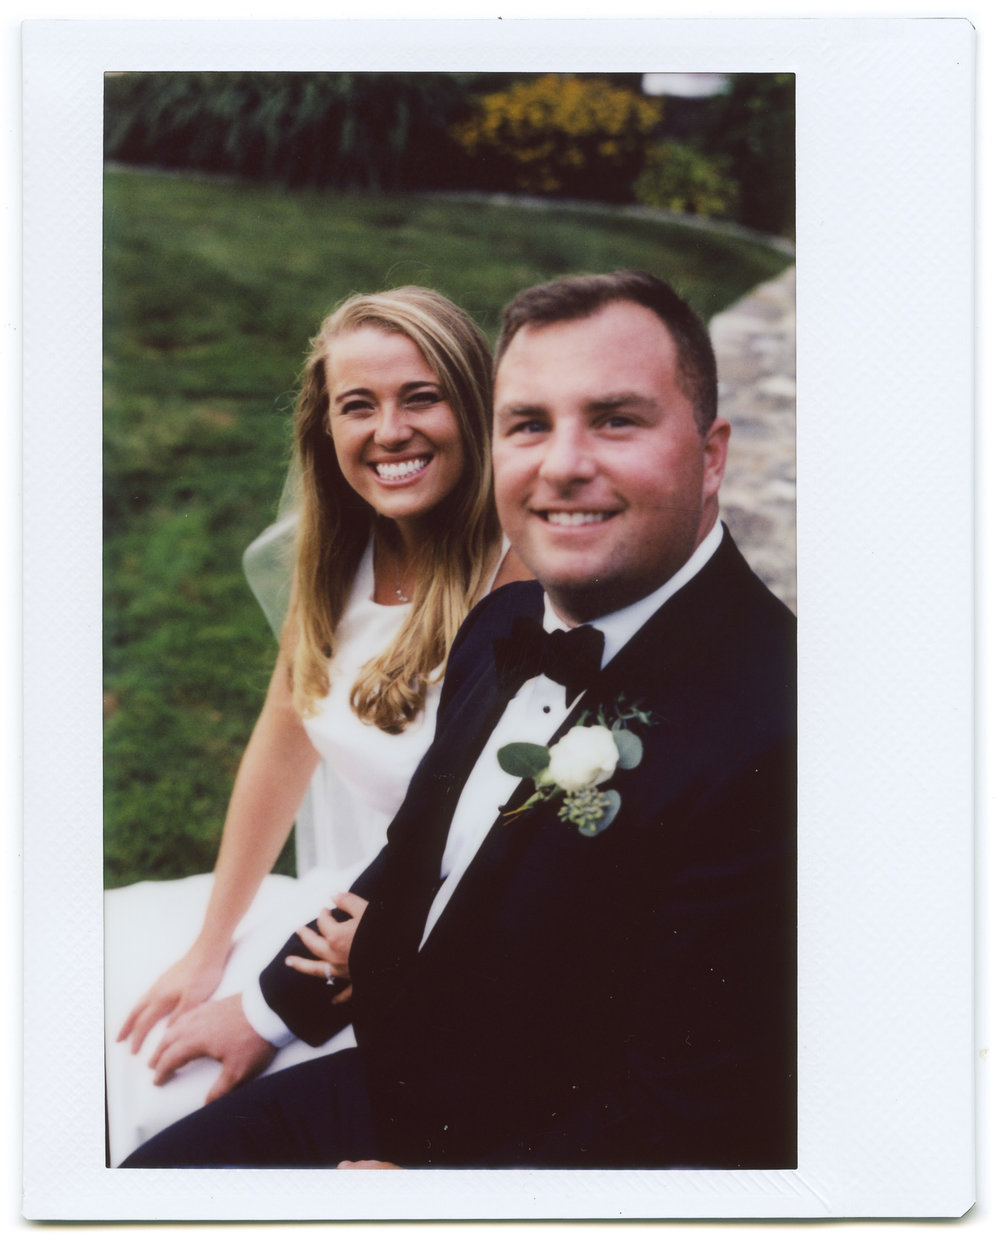 Brittany & AJ wedding POLAROID - 01.jpg